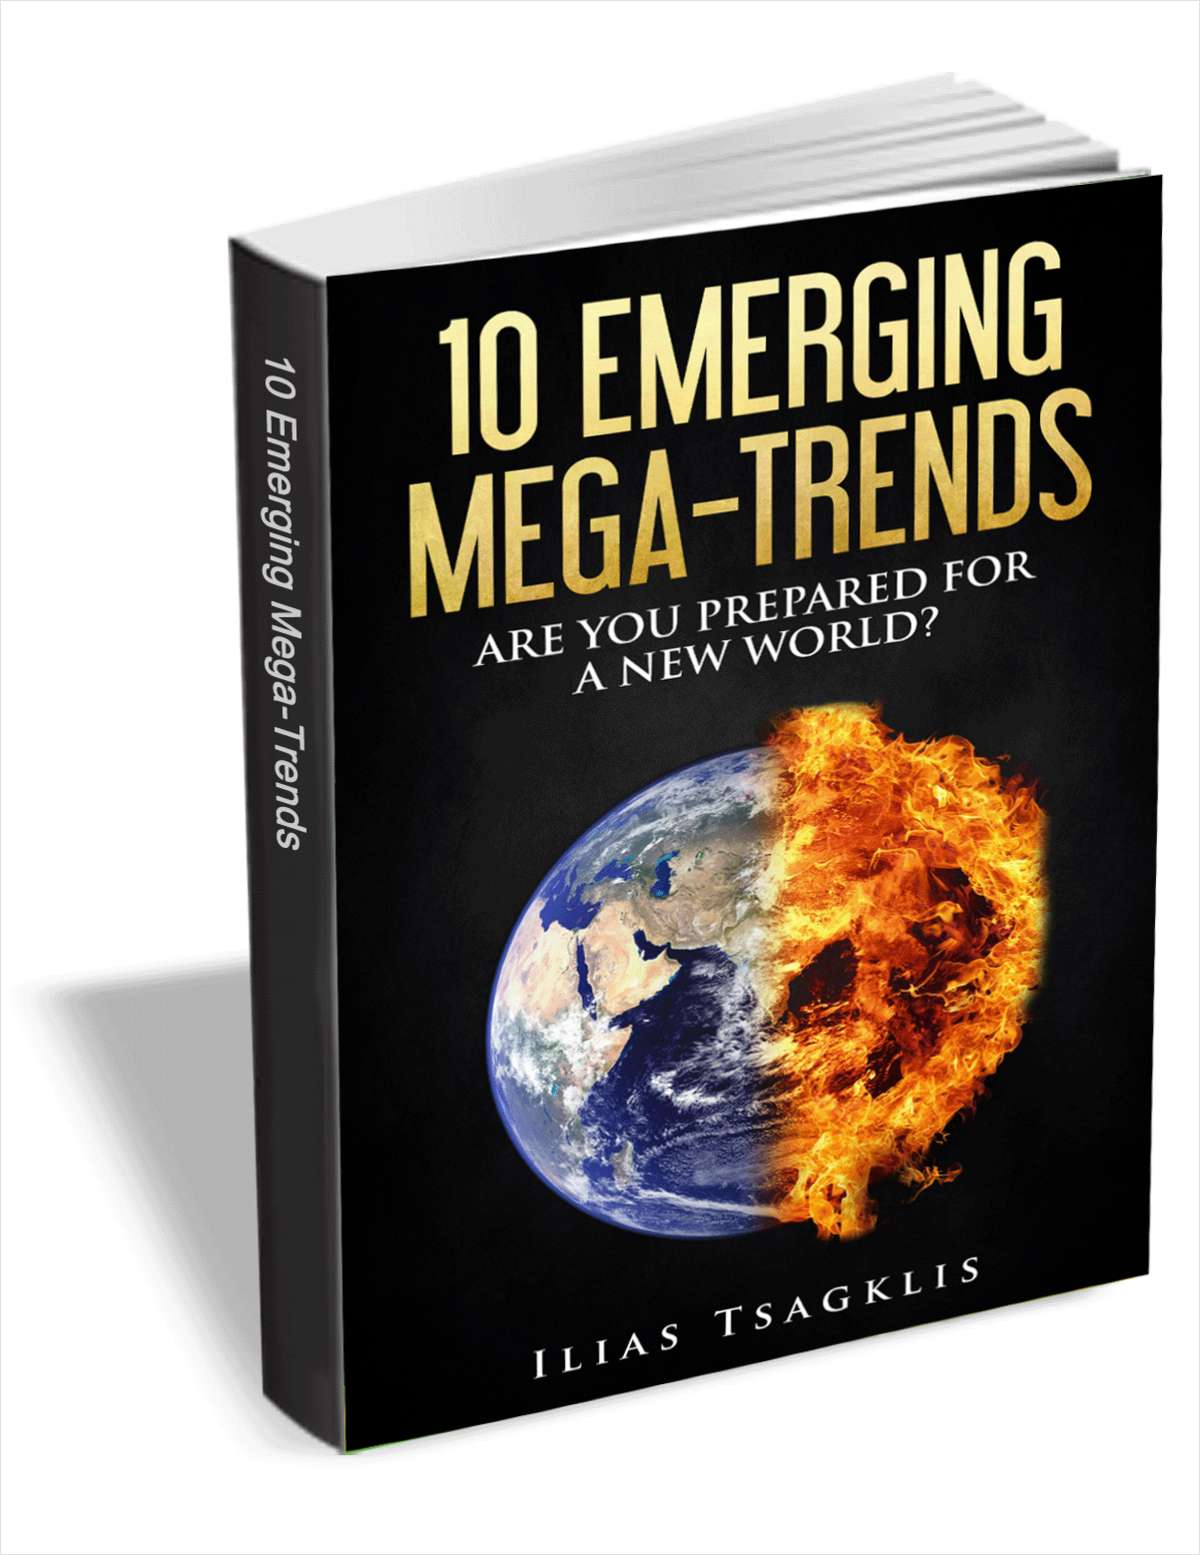 10 Emerging Mega-Trends: Are You Prepared for a New World?